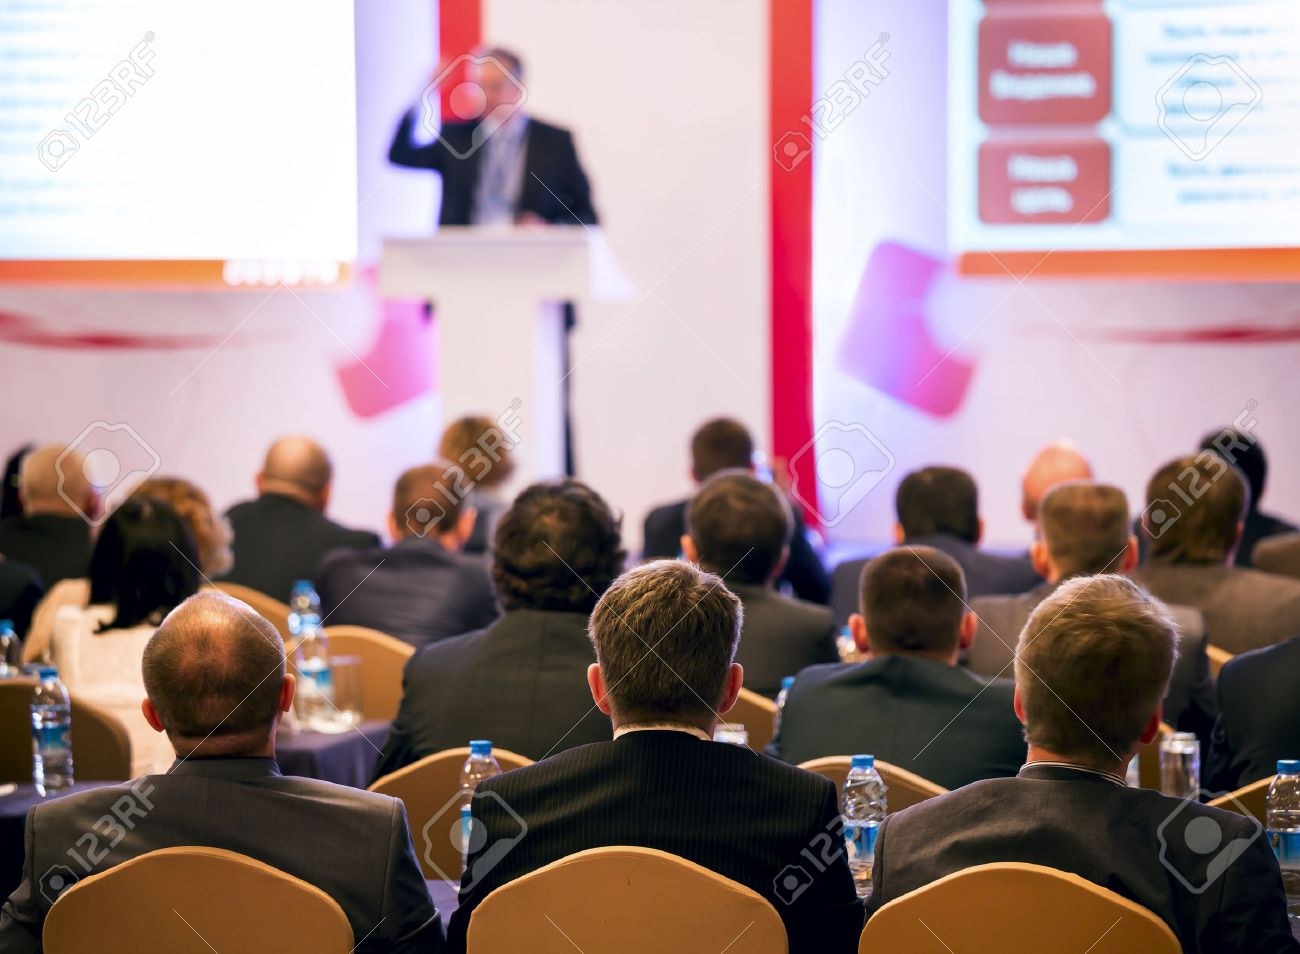 Speaker on the podium. People at the conference hall. Rear view Stock Photo - 24209300